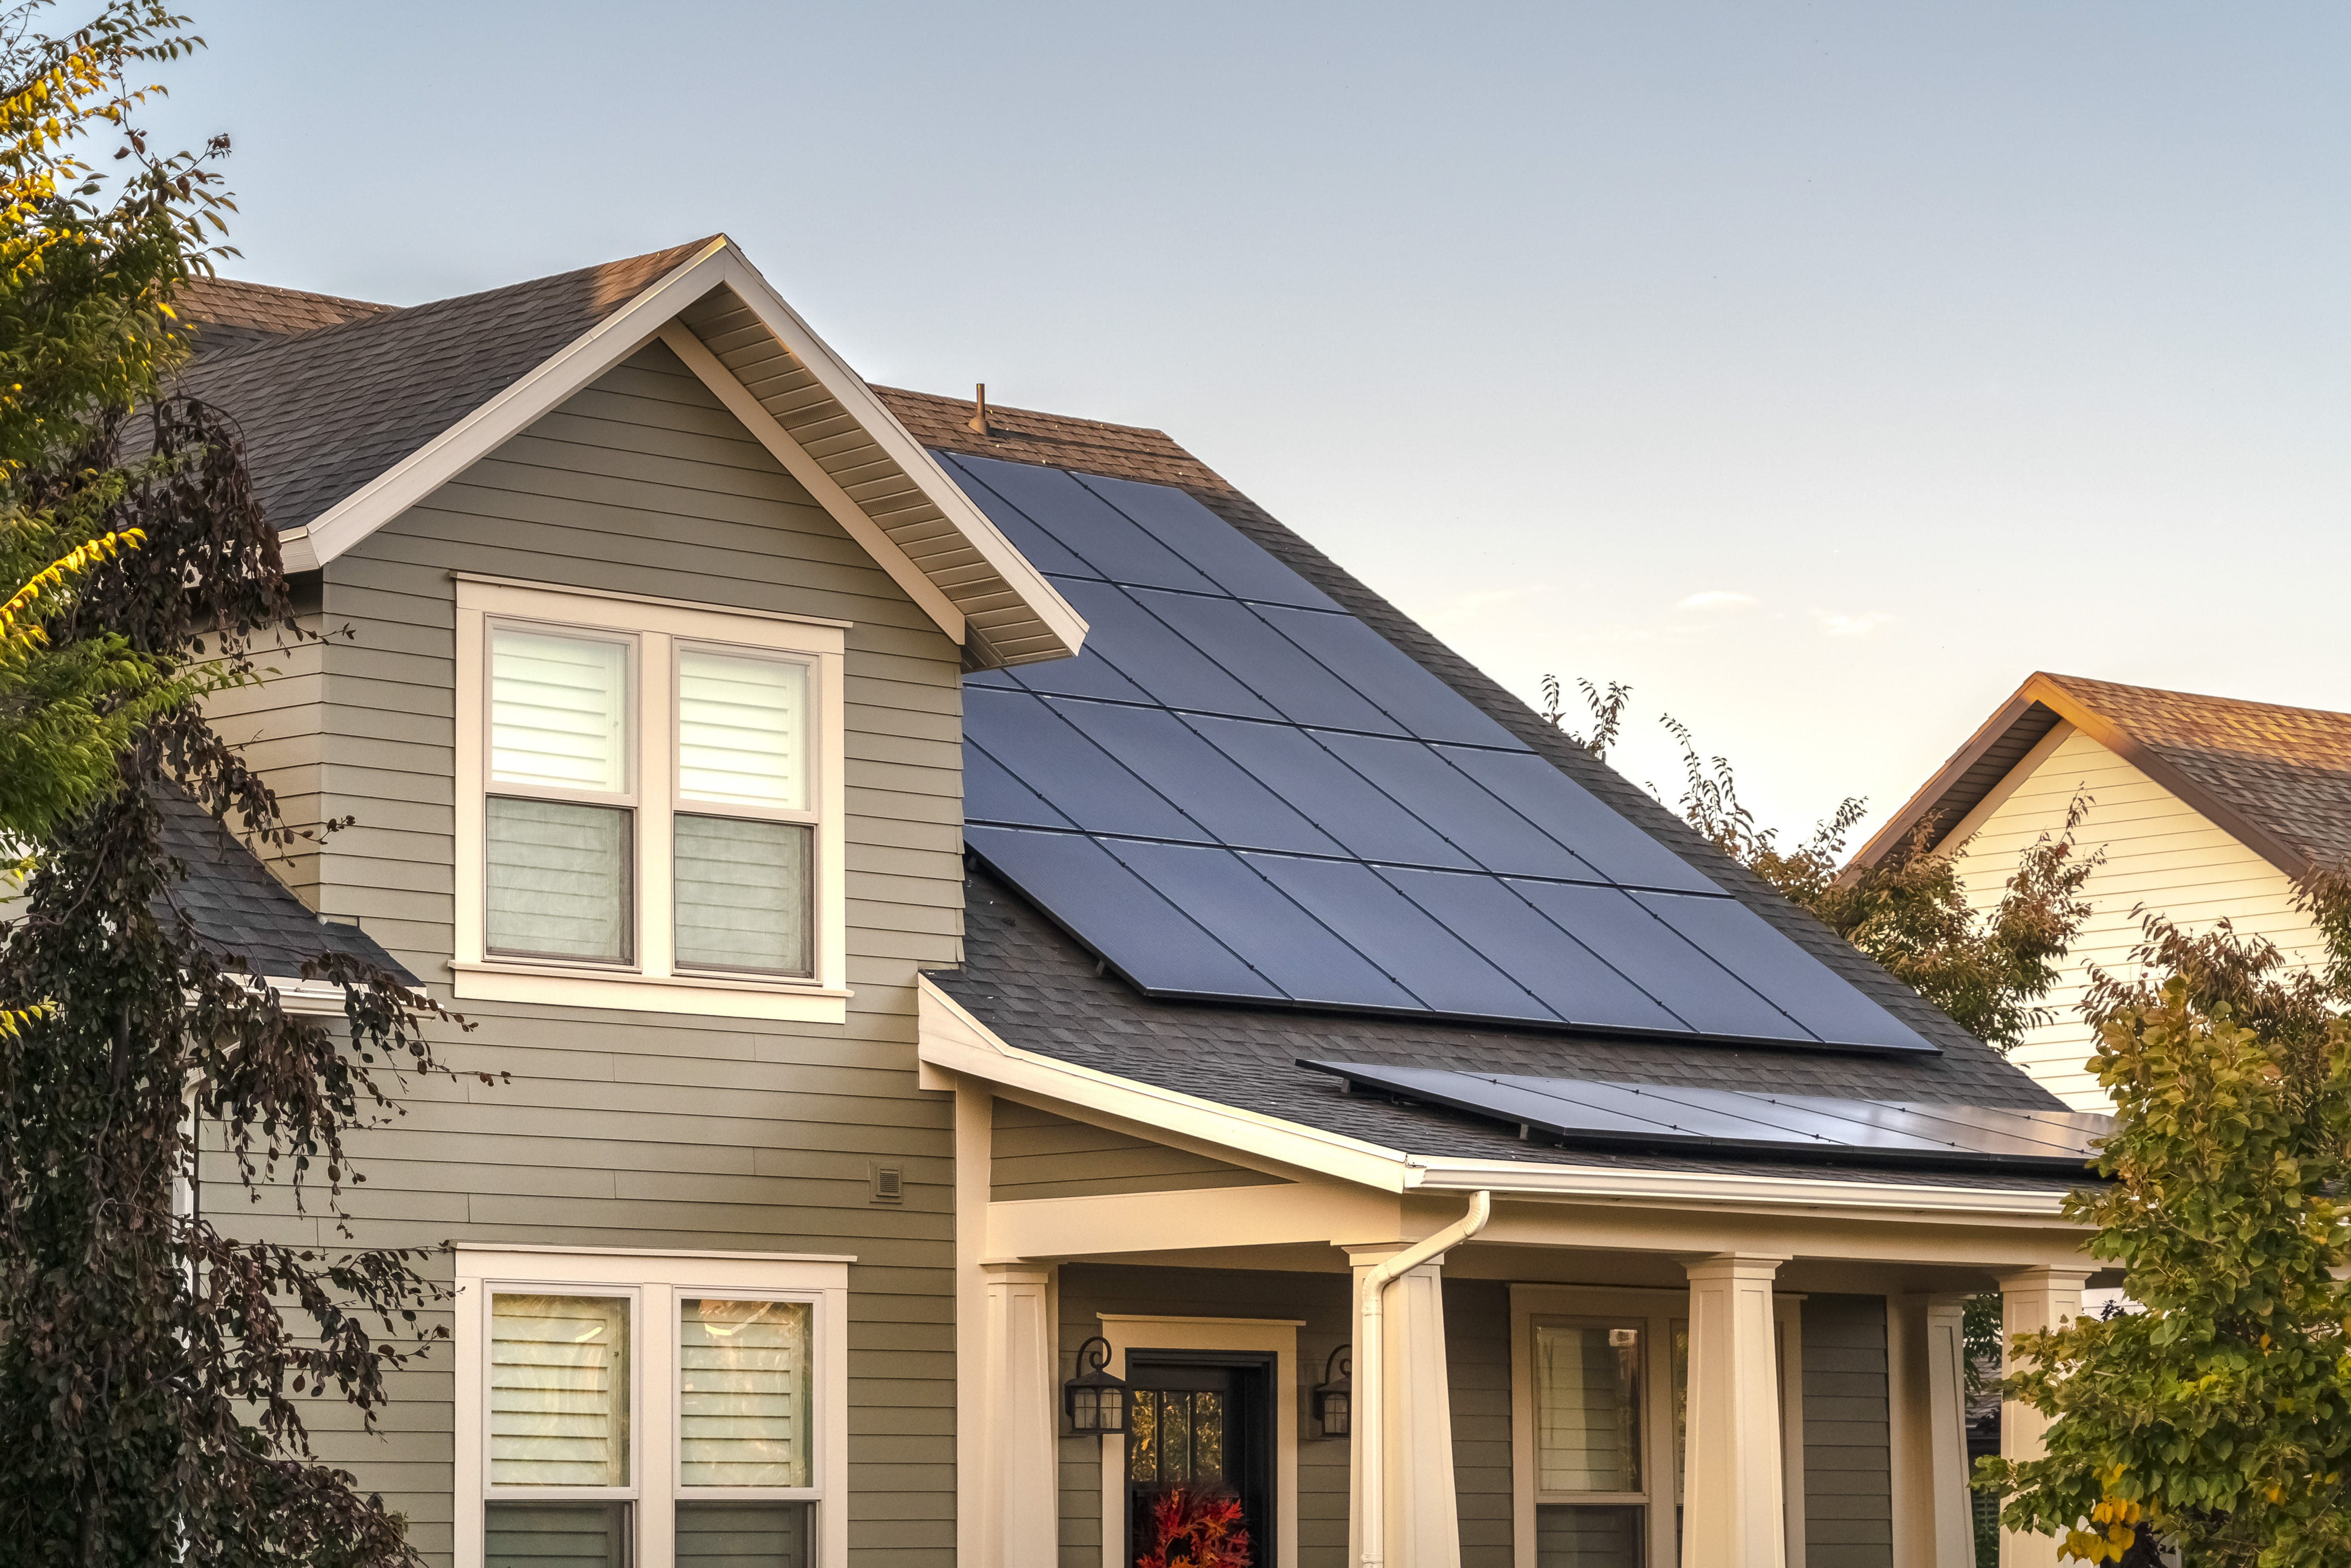 What You Need to Know About Adding Solar Panels to Your Home